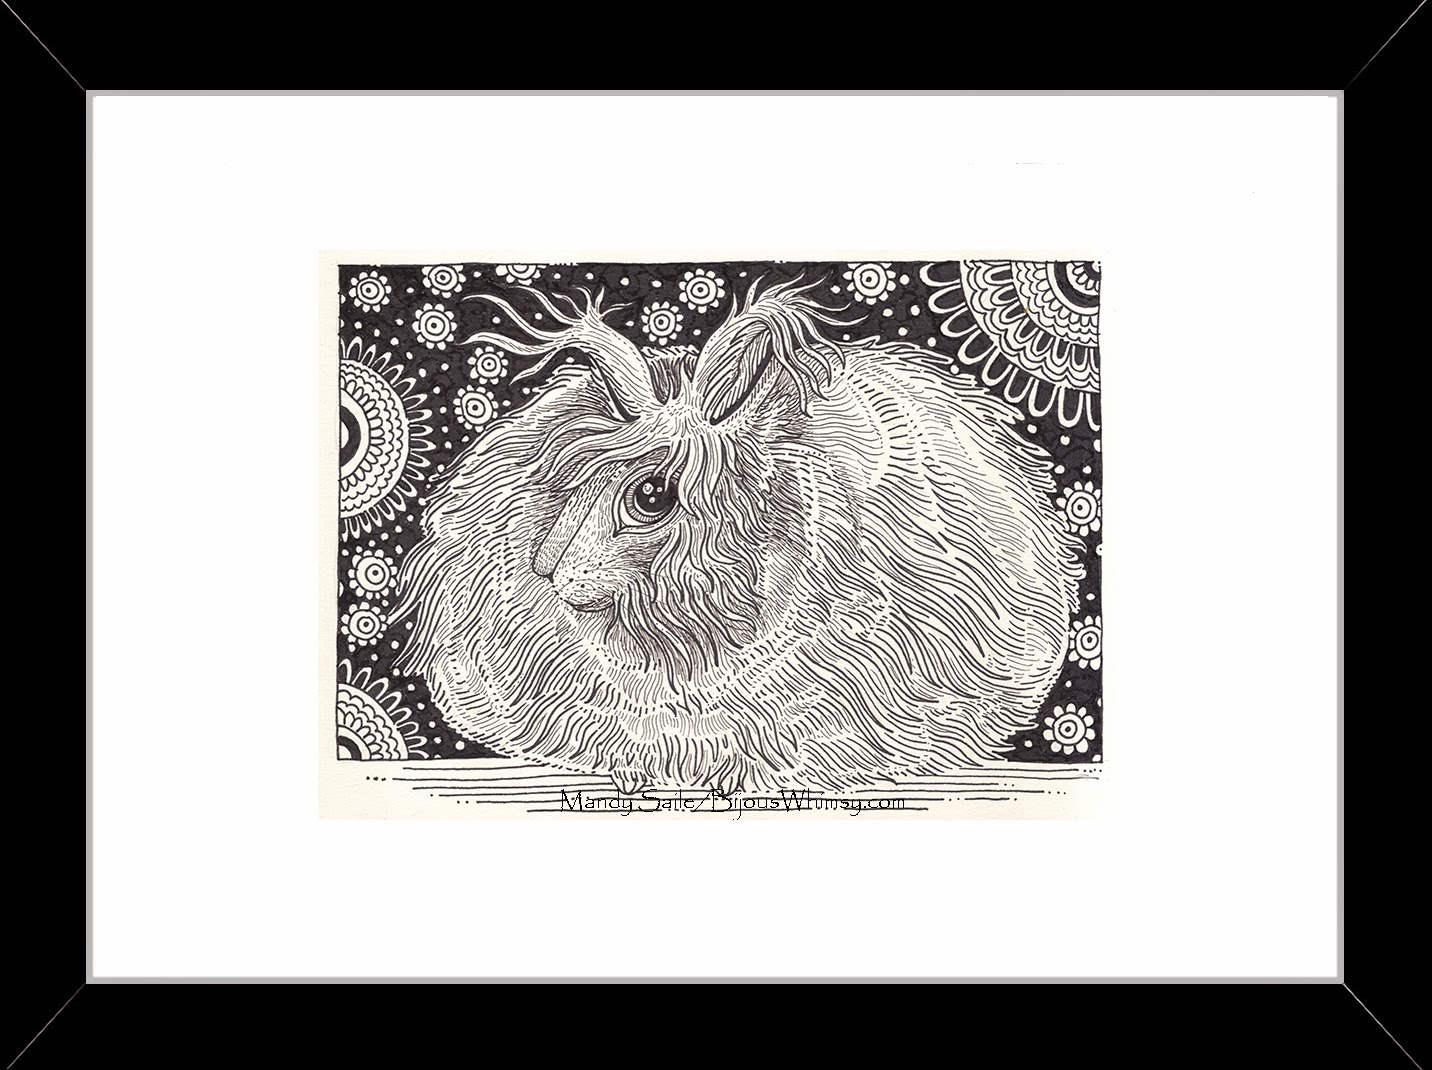 https://www.etsy.com/listing/209877854/rabbit-ink-drawing-7-8-x-10-print-a?ref=shop_home_active_12